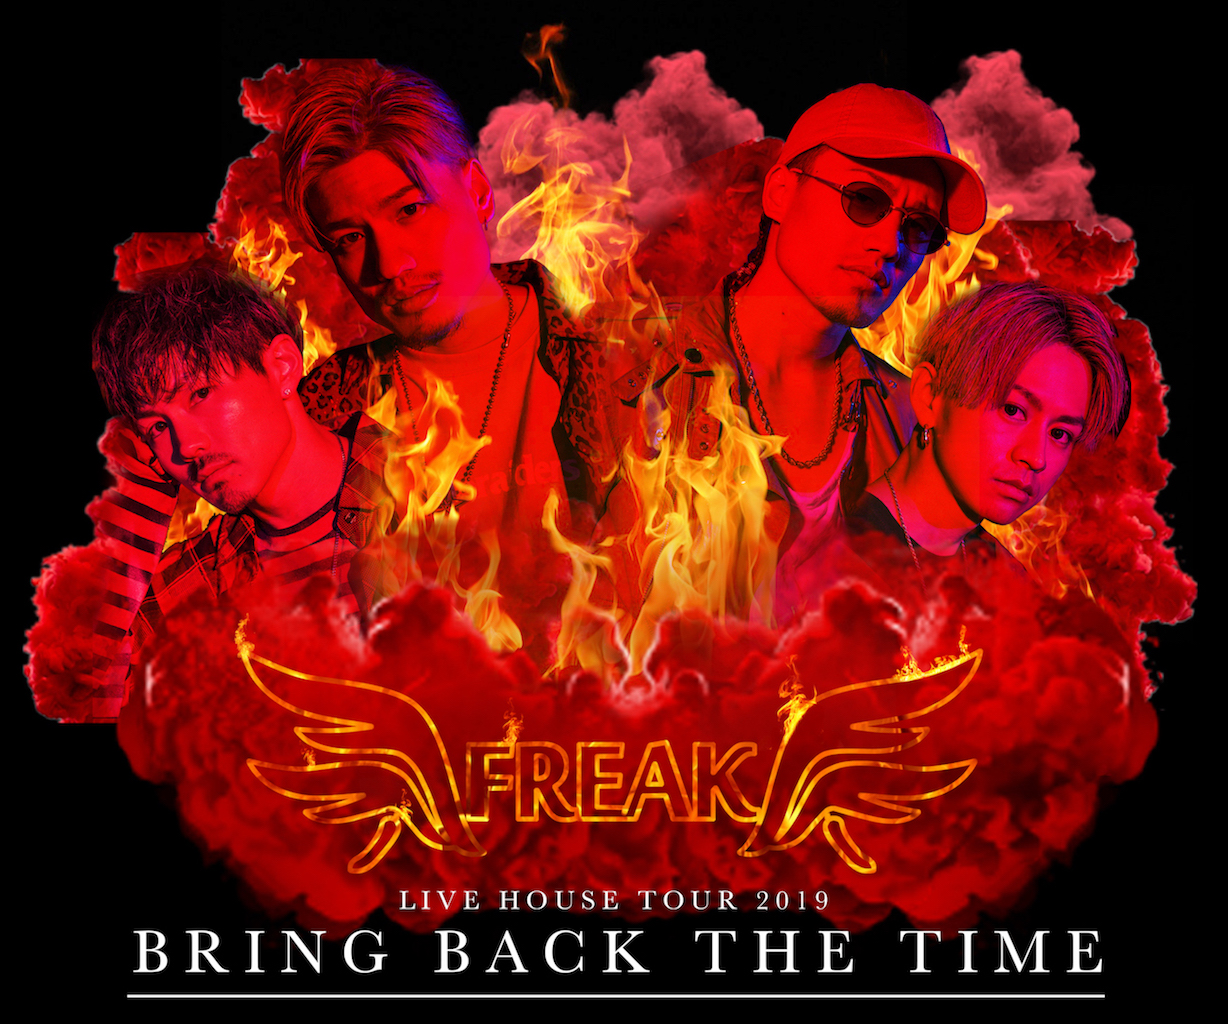 FREAK LIVE HOUSE TOUR 2019 [BRING BACK THE TIME]佐賀公演